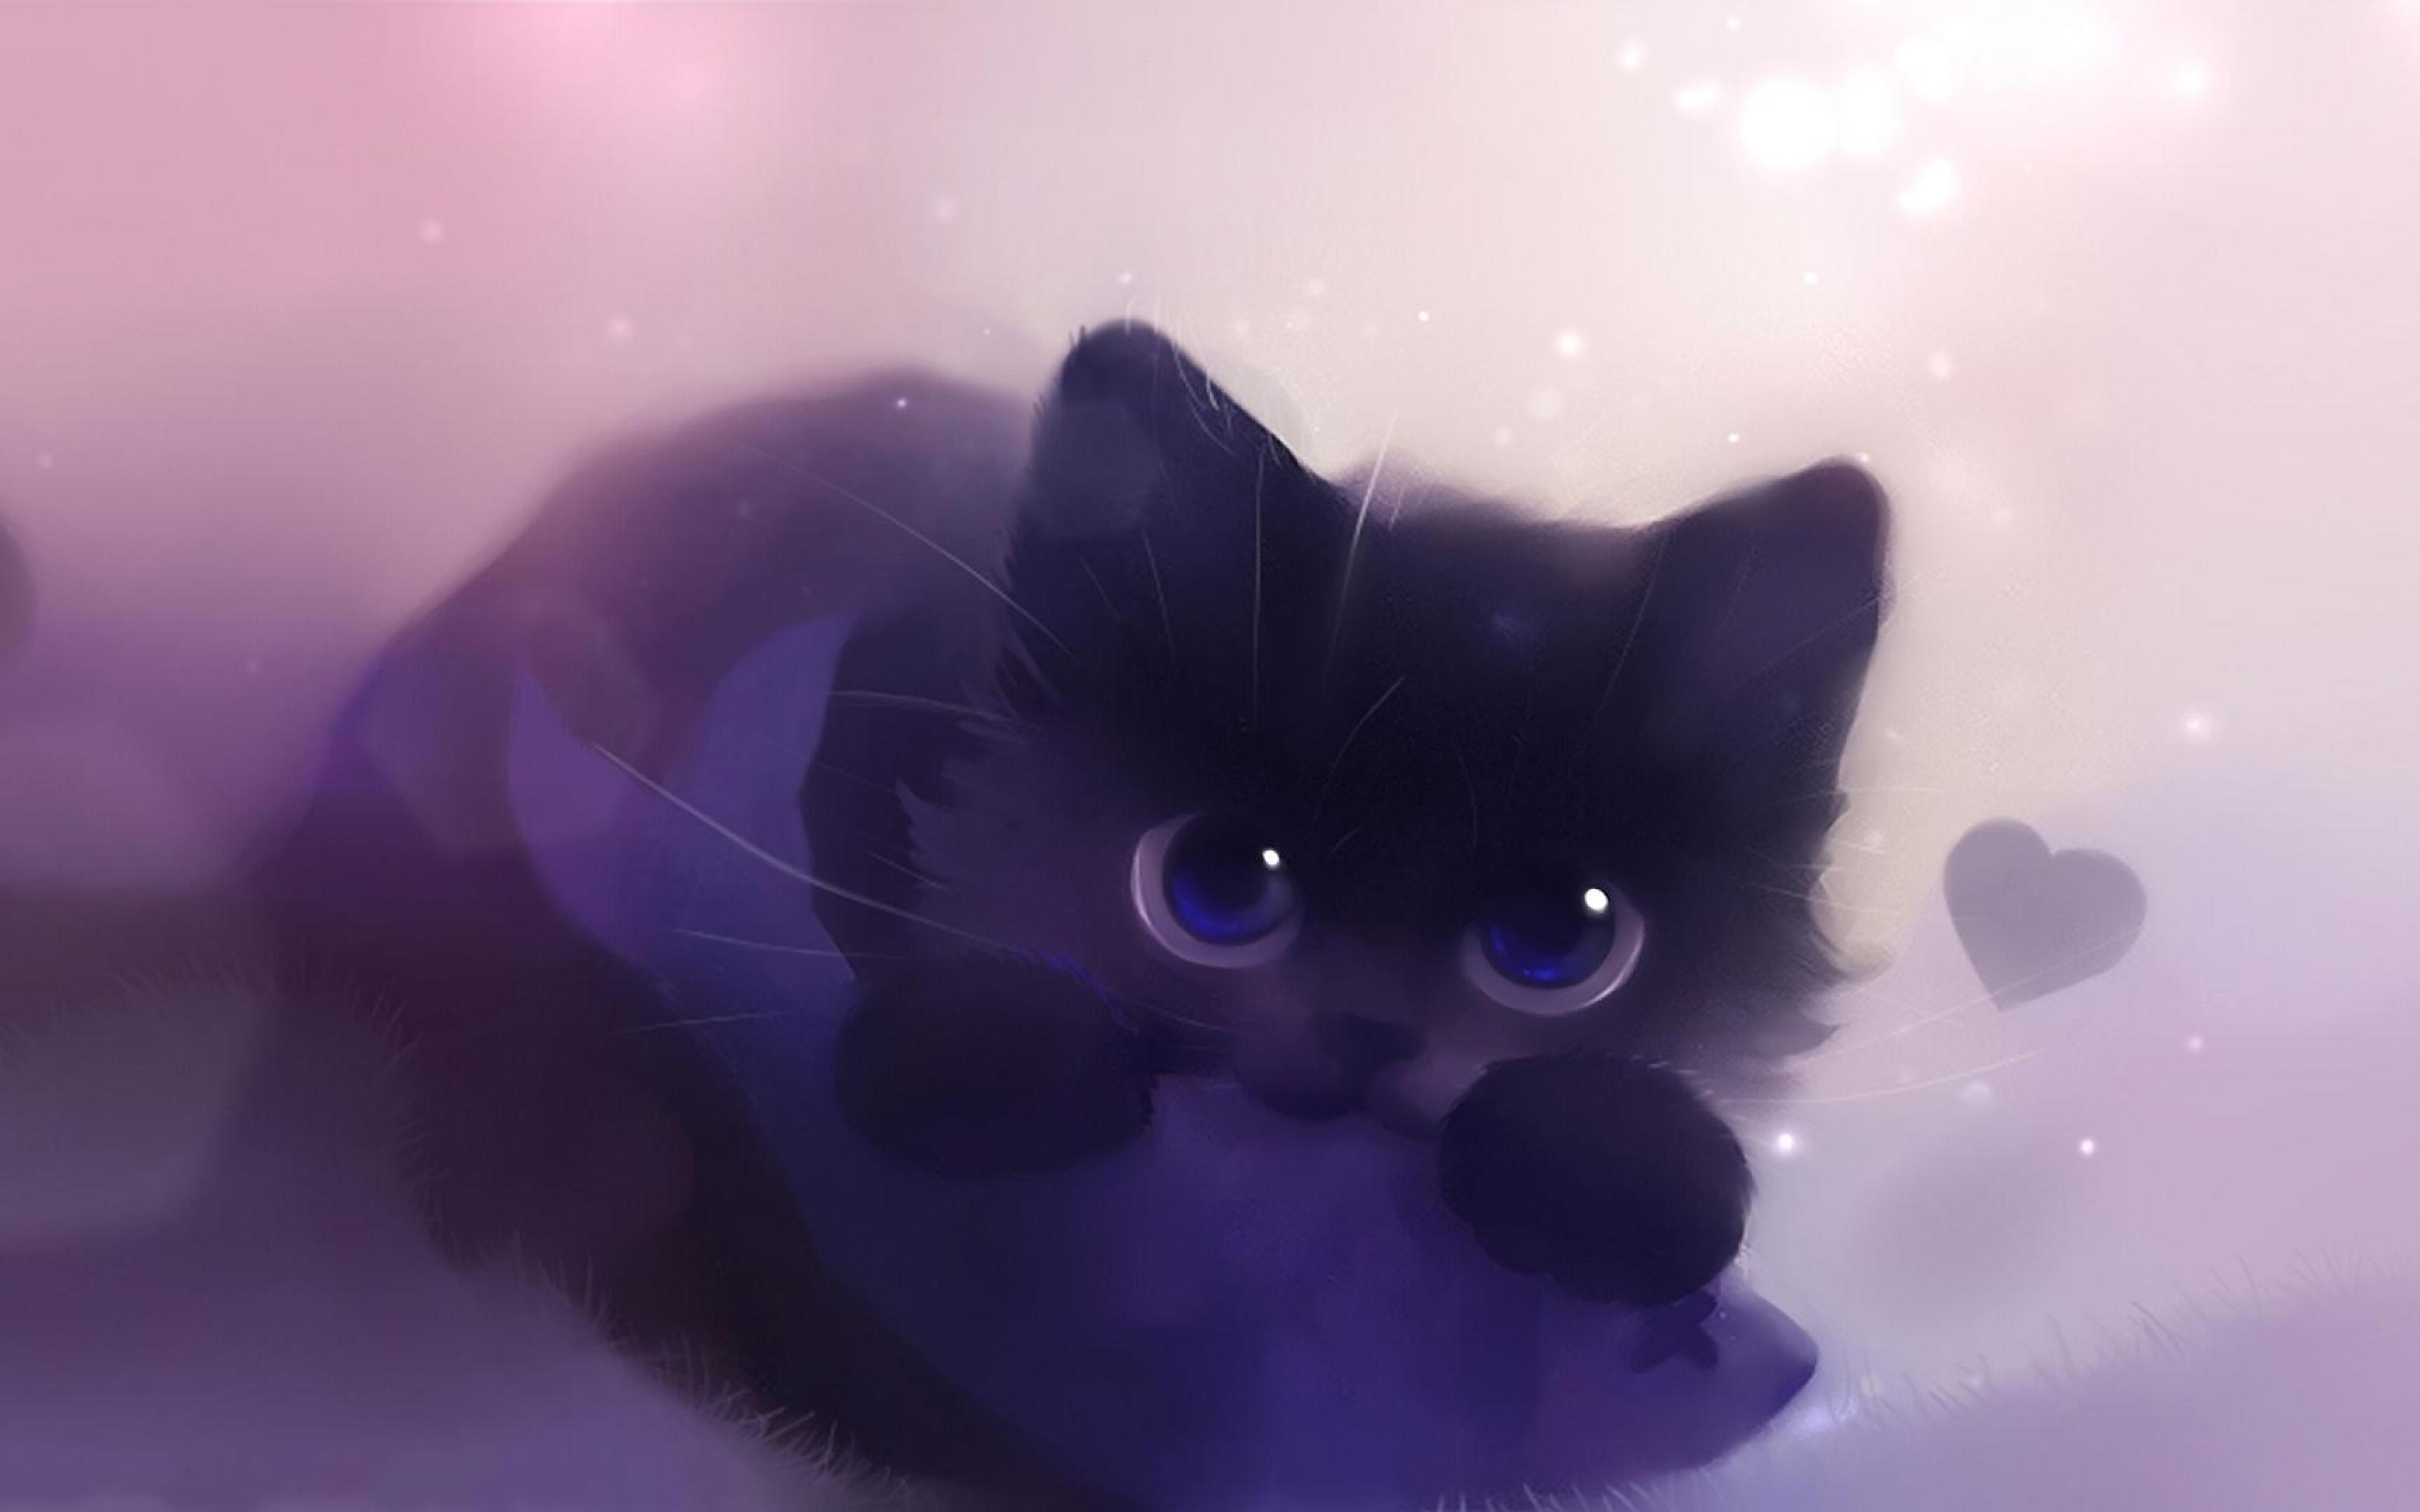 Black Cat Hd Beddable Wallpaper 2560x960px Wallpaper Card From